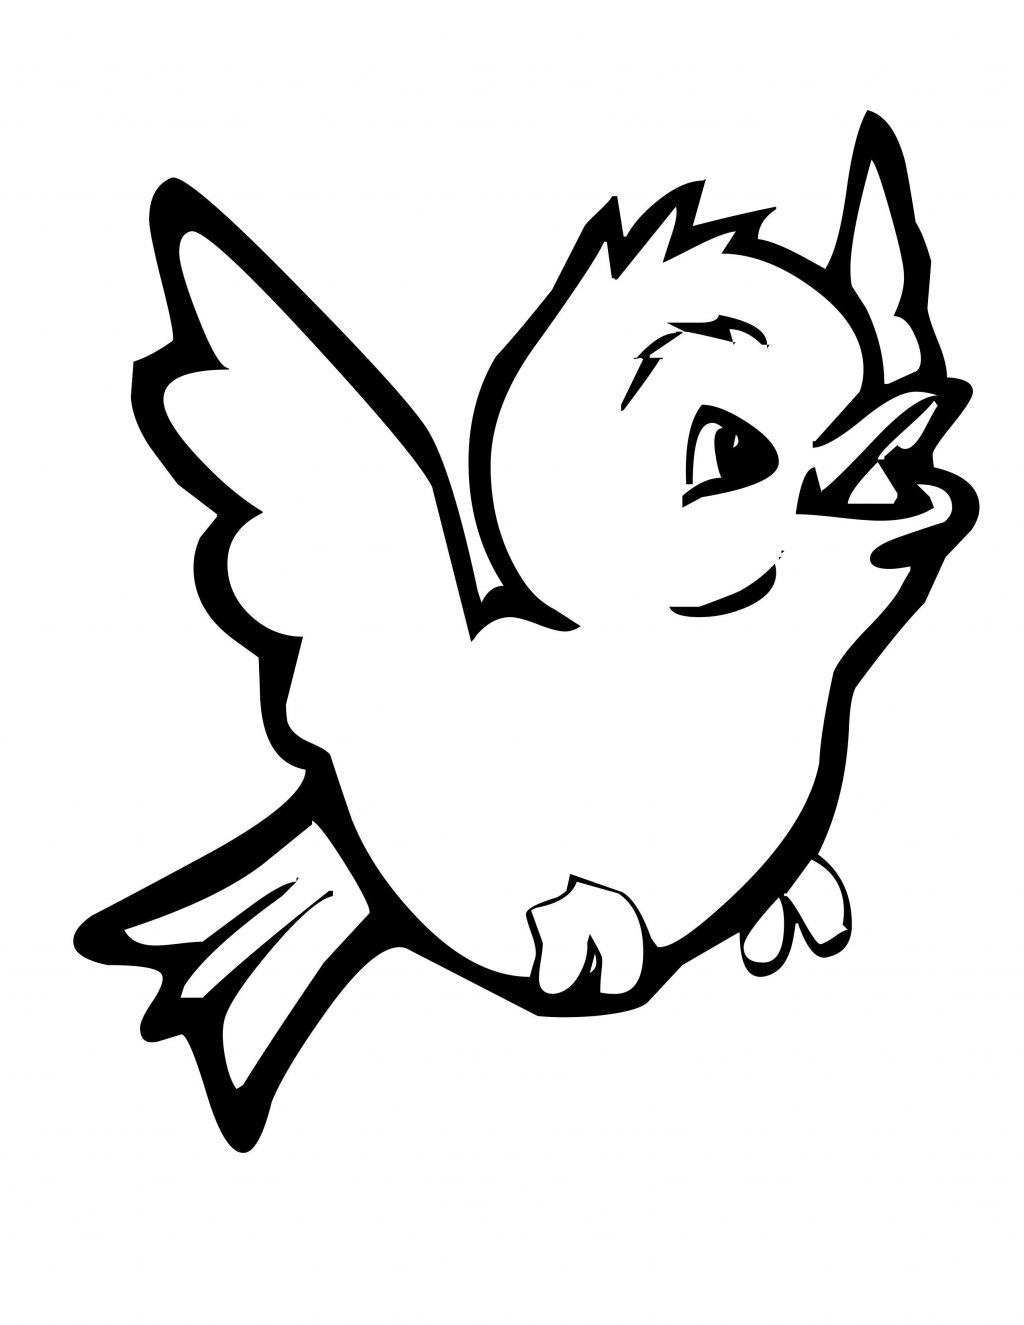 25+ Best Image of Bird Coloring Page